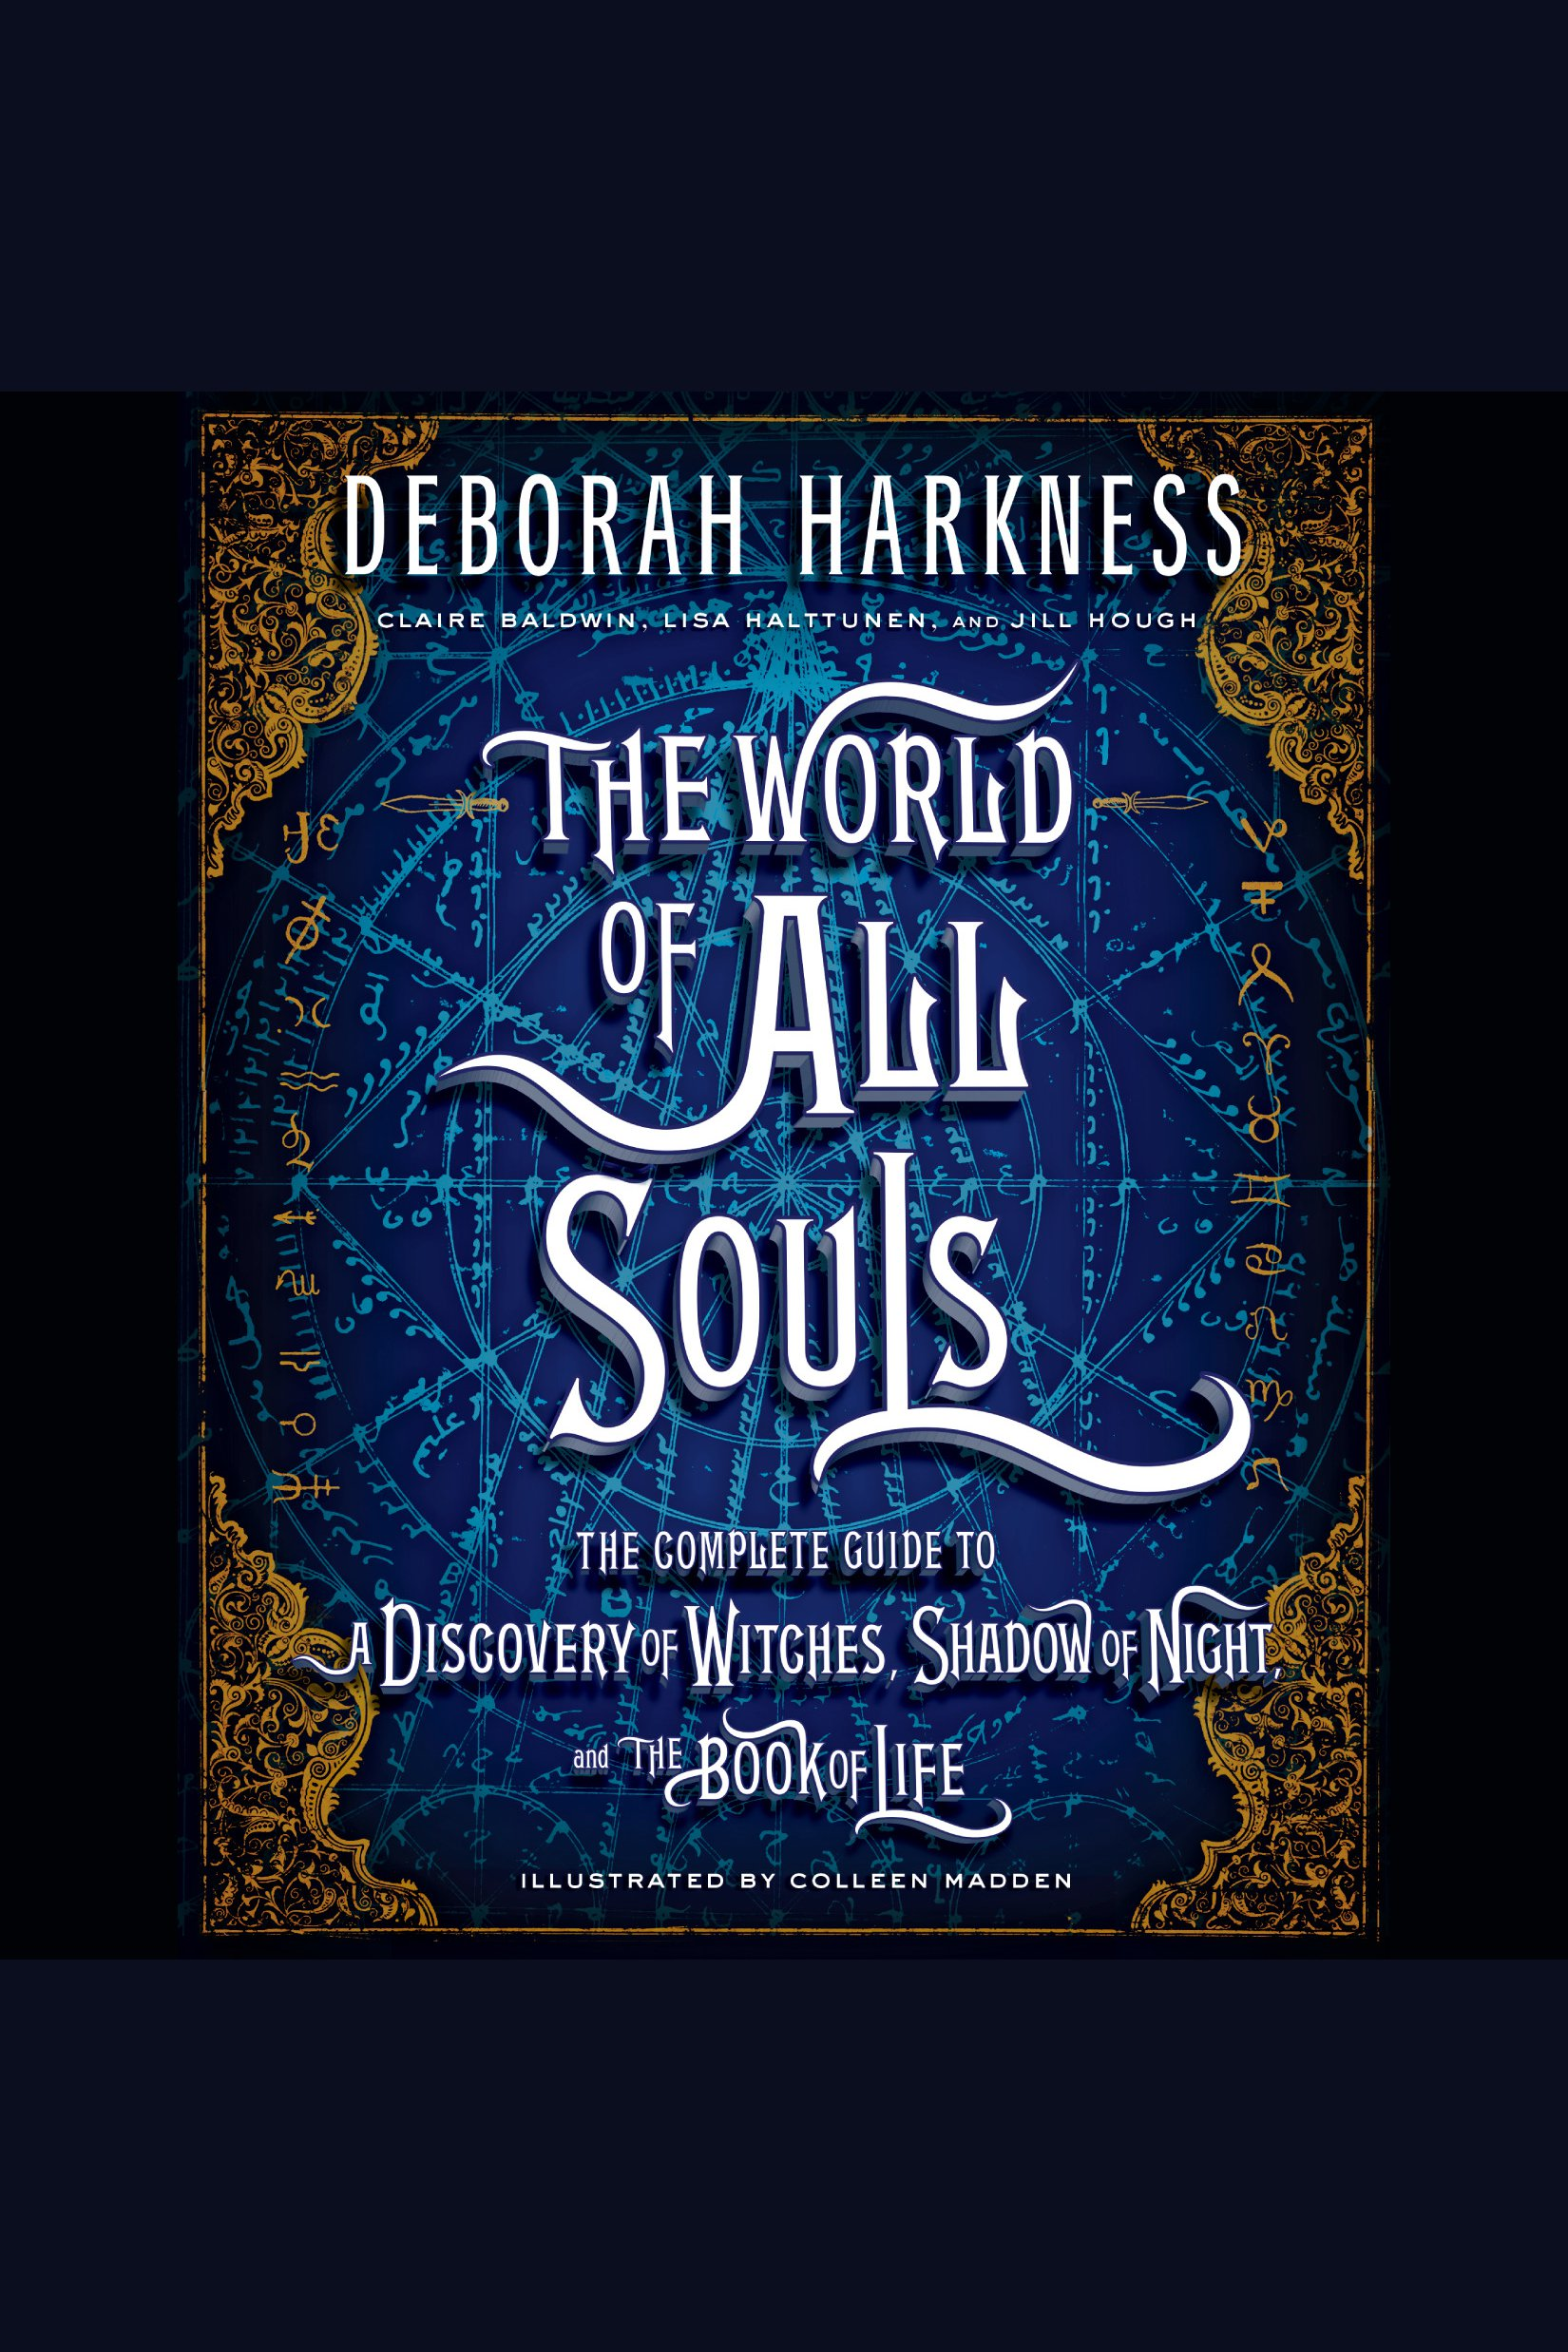 The World of All Souls The Complete Guide to A Discovery of Witches, Shadow of Night, and The Book of Life